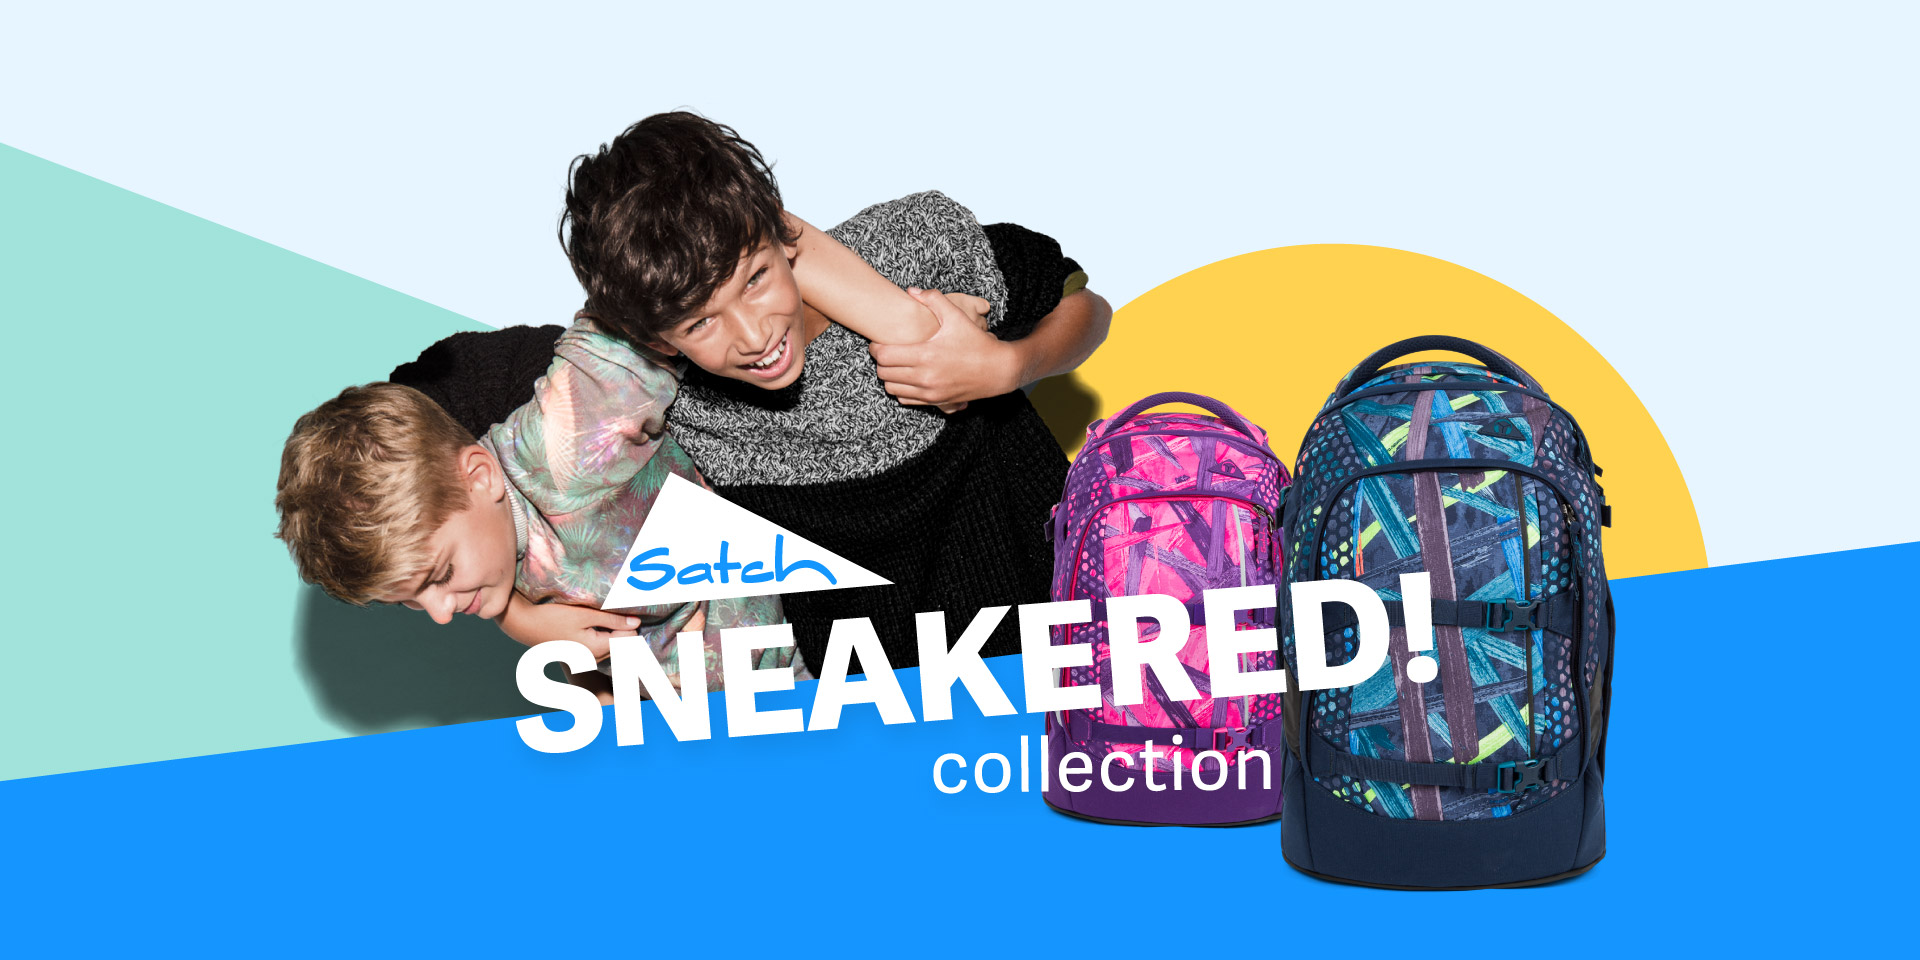 satch hero sneakered collection